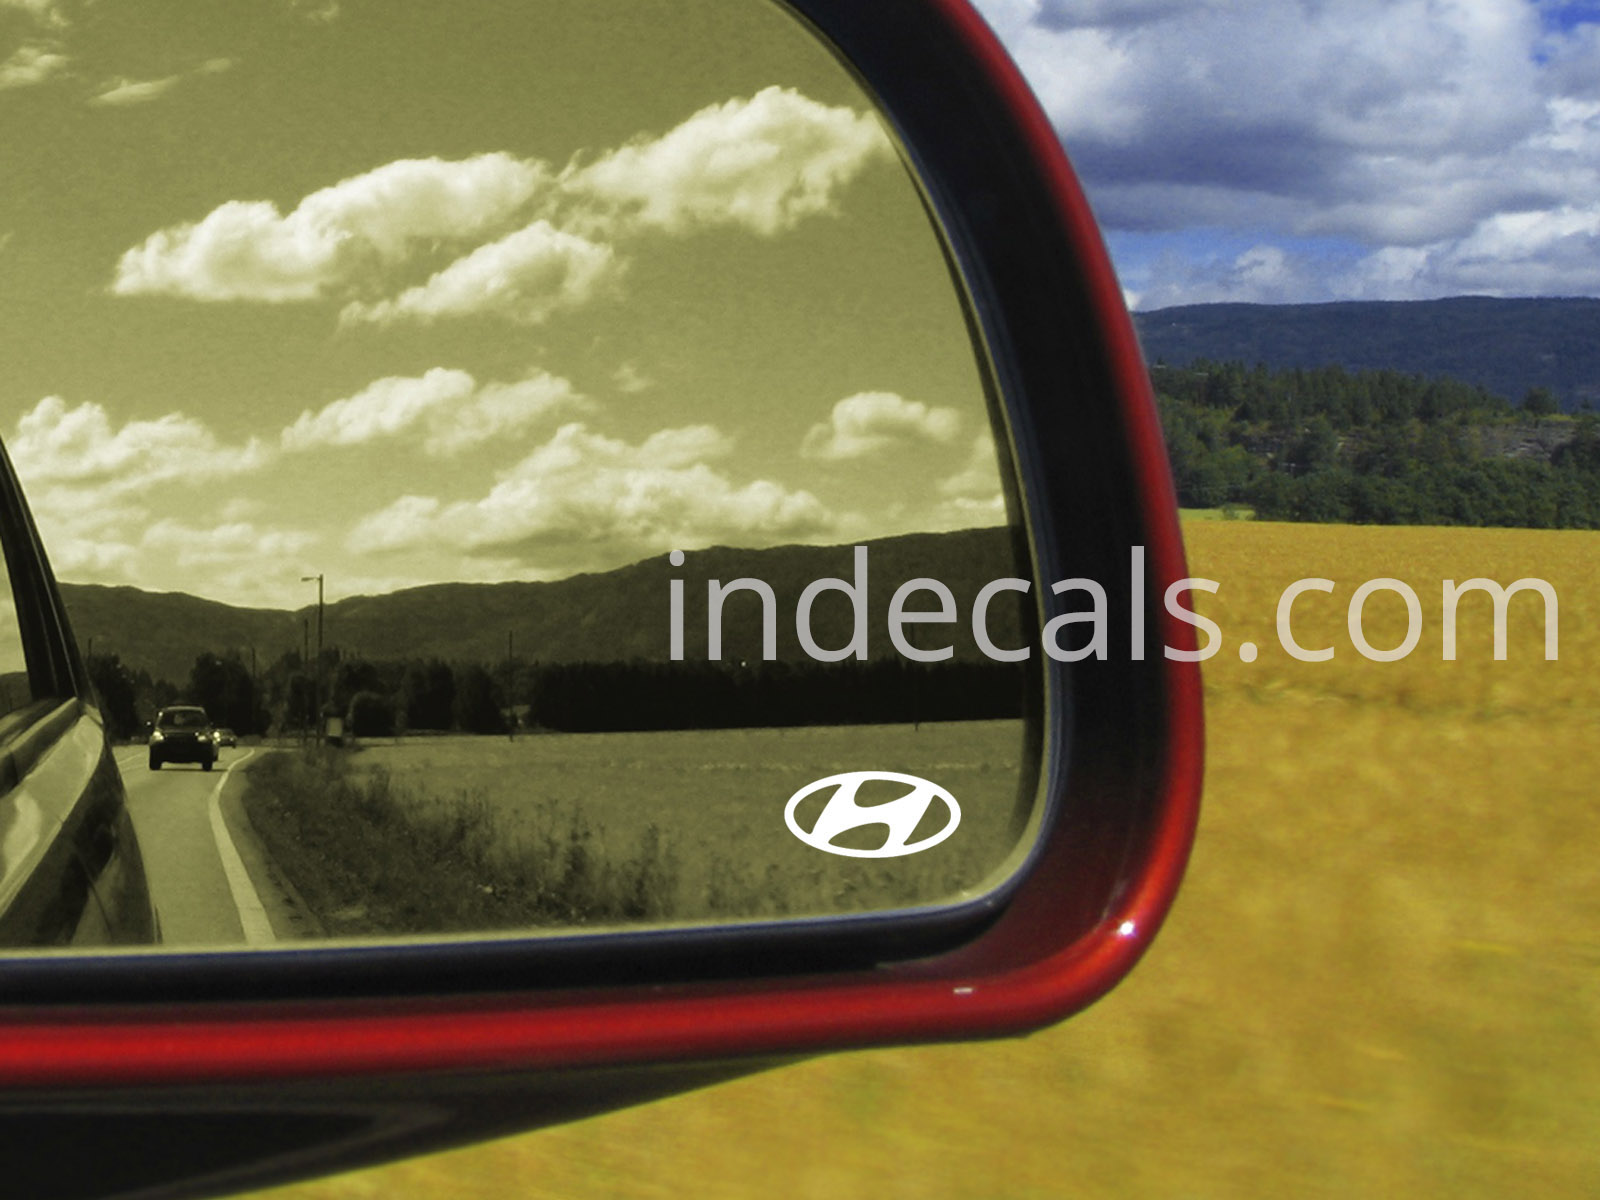 3 X Hyundai Stickers For Mirror Glass White Indecals Com